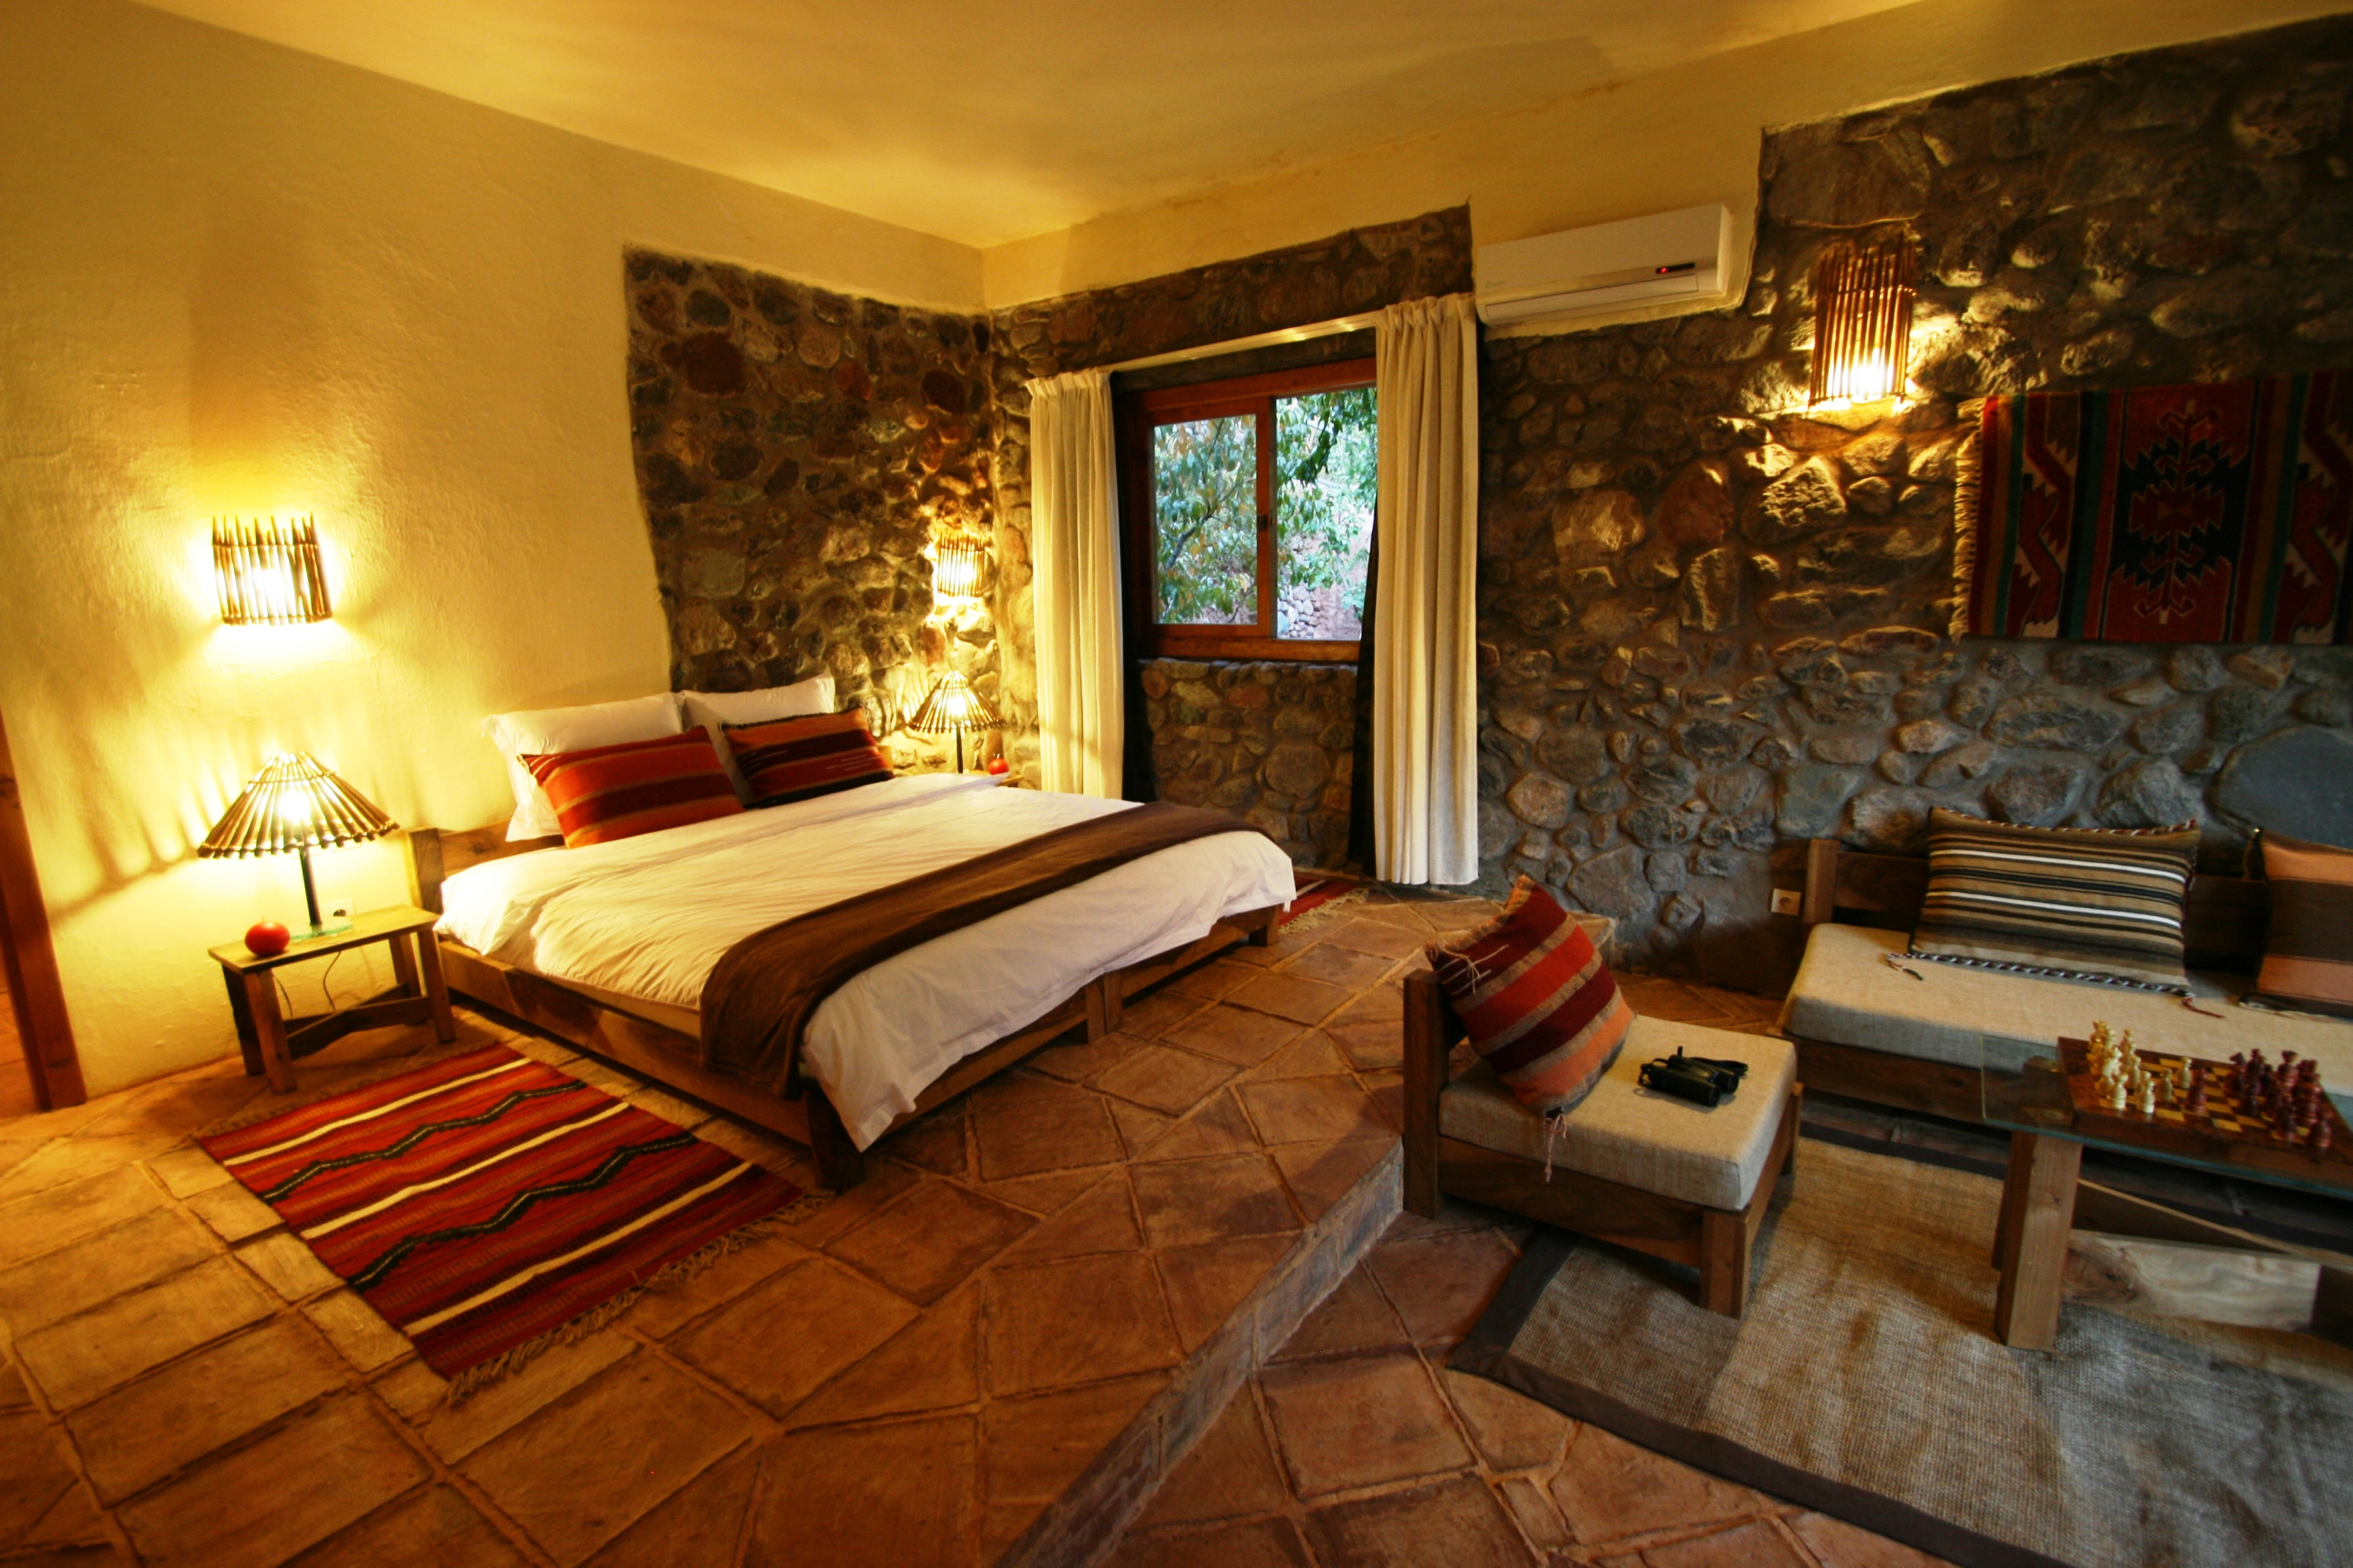 Junior suite at Kasbah Africa